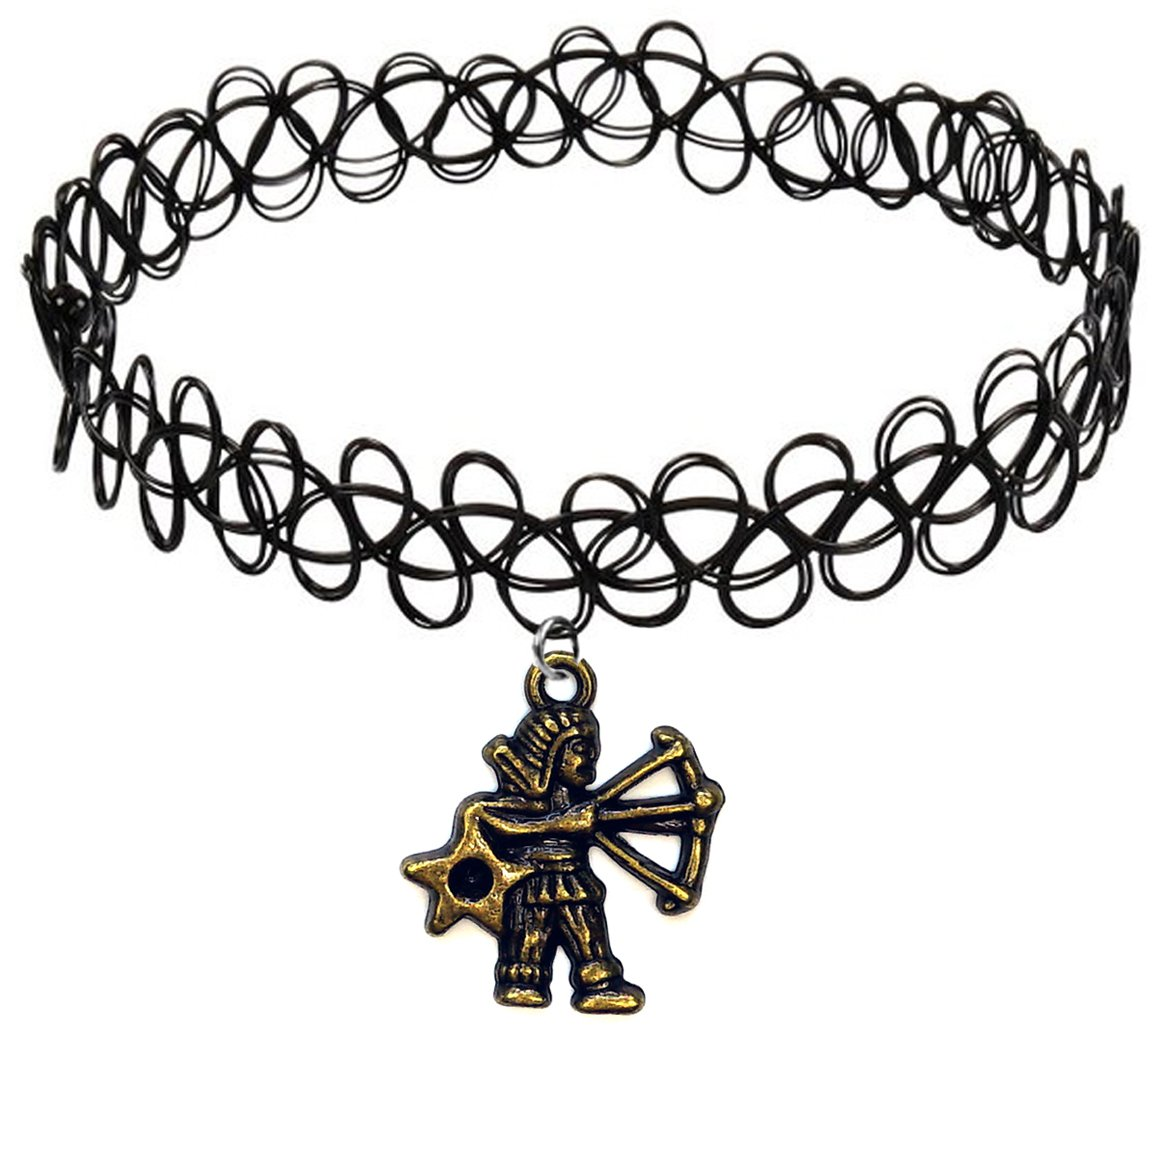 Фотография большая Тату-чокер Tattoo Choker Знаки Зодиака - Стрелец из аниме и манги Знаки зодиака